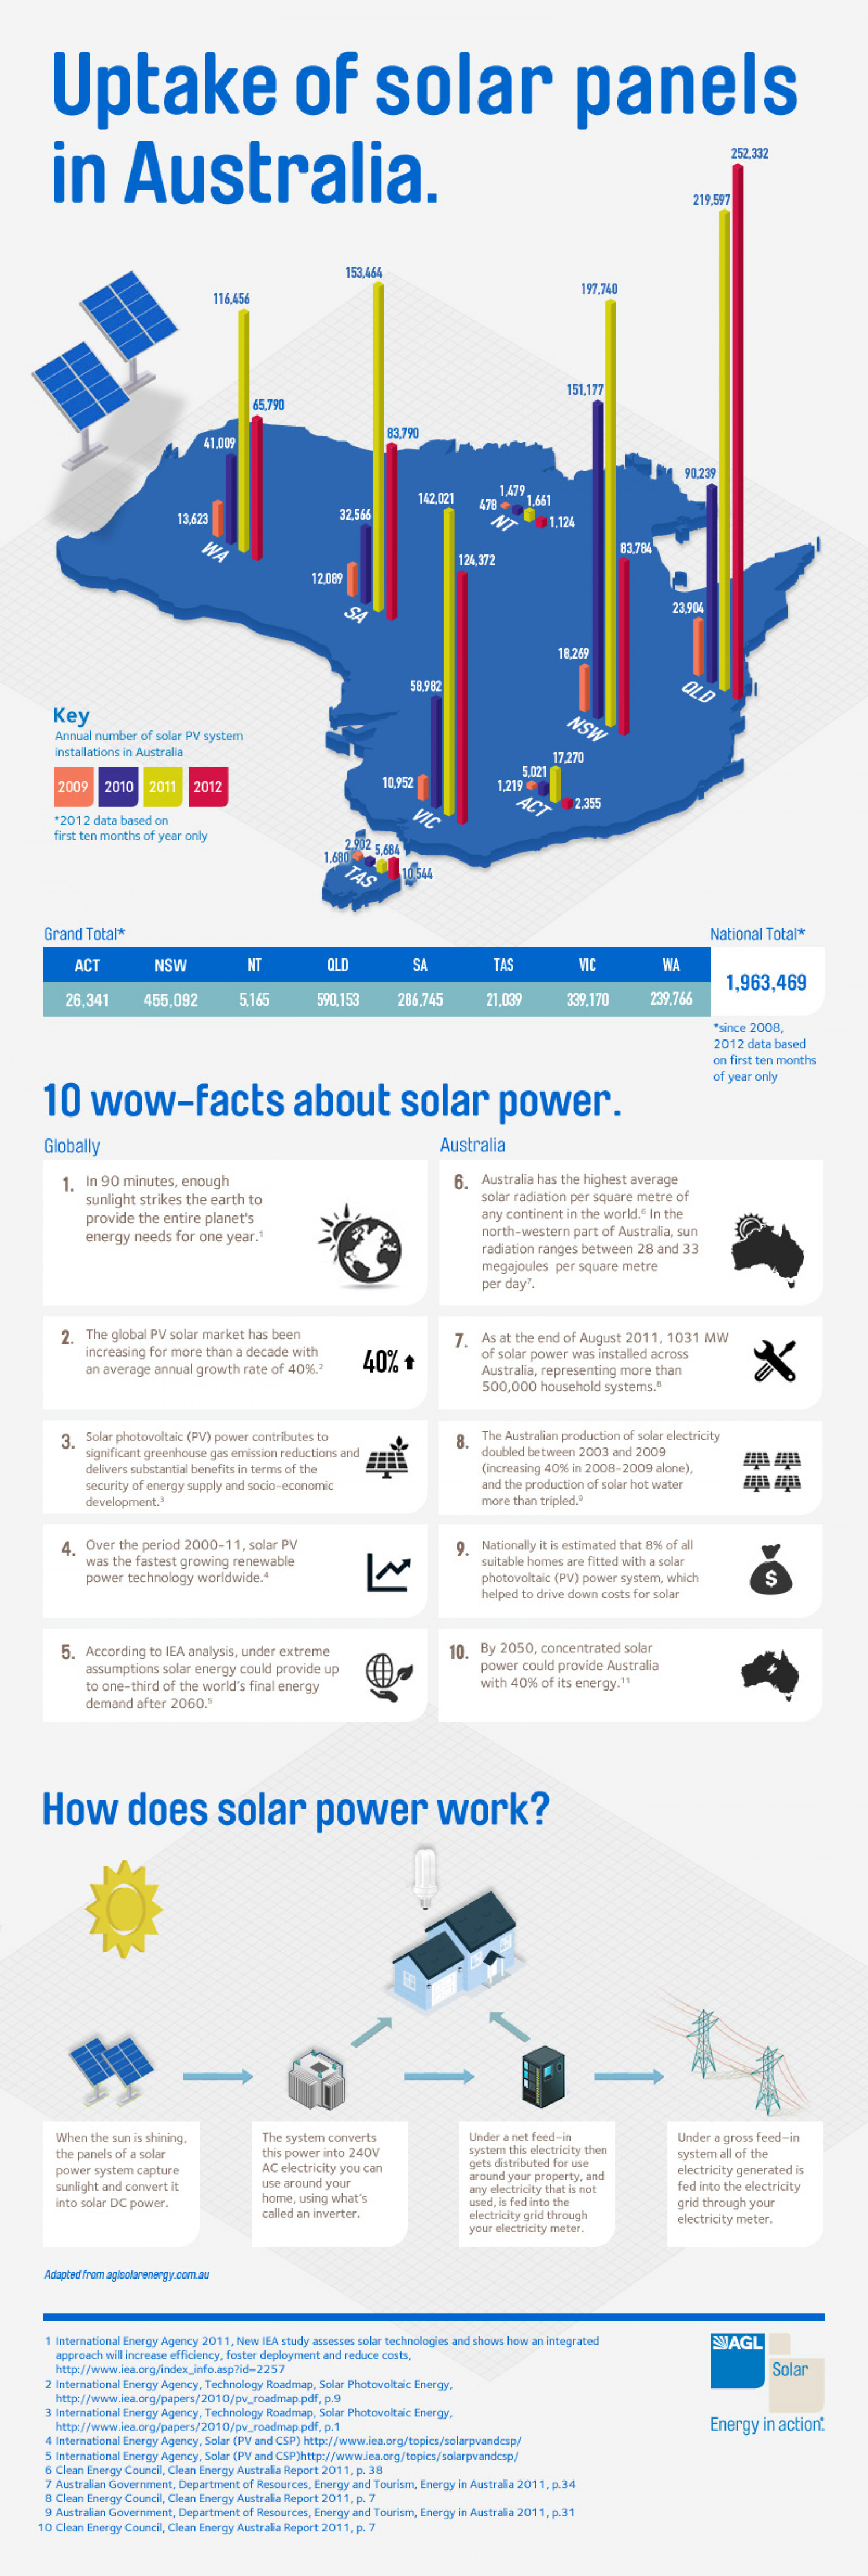 Uptake of solar power in Australia Infographic